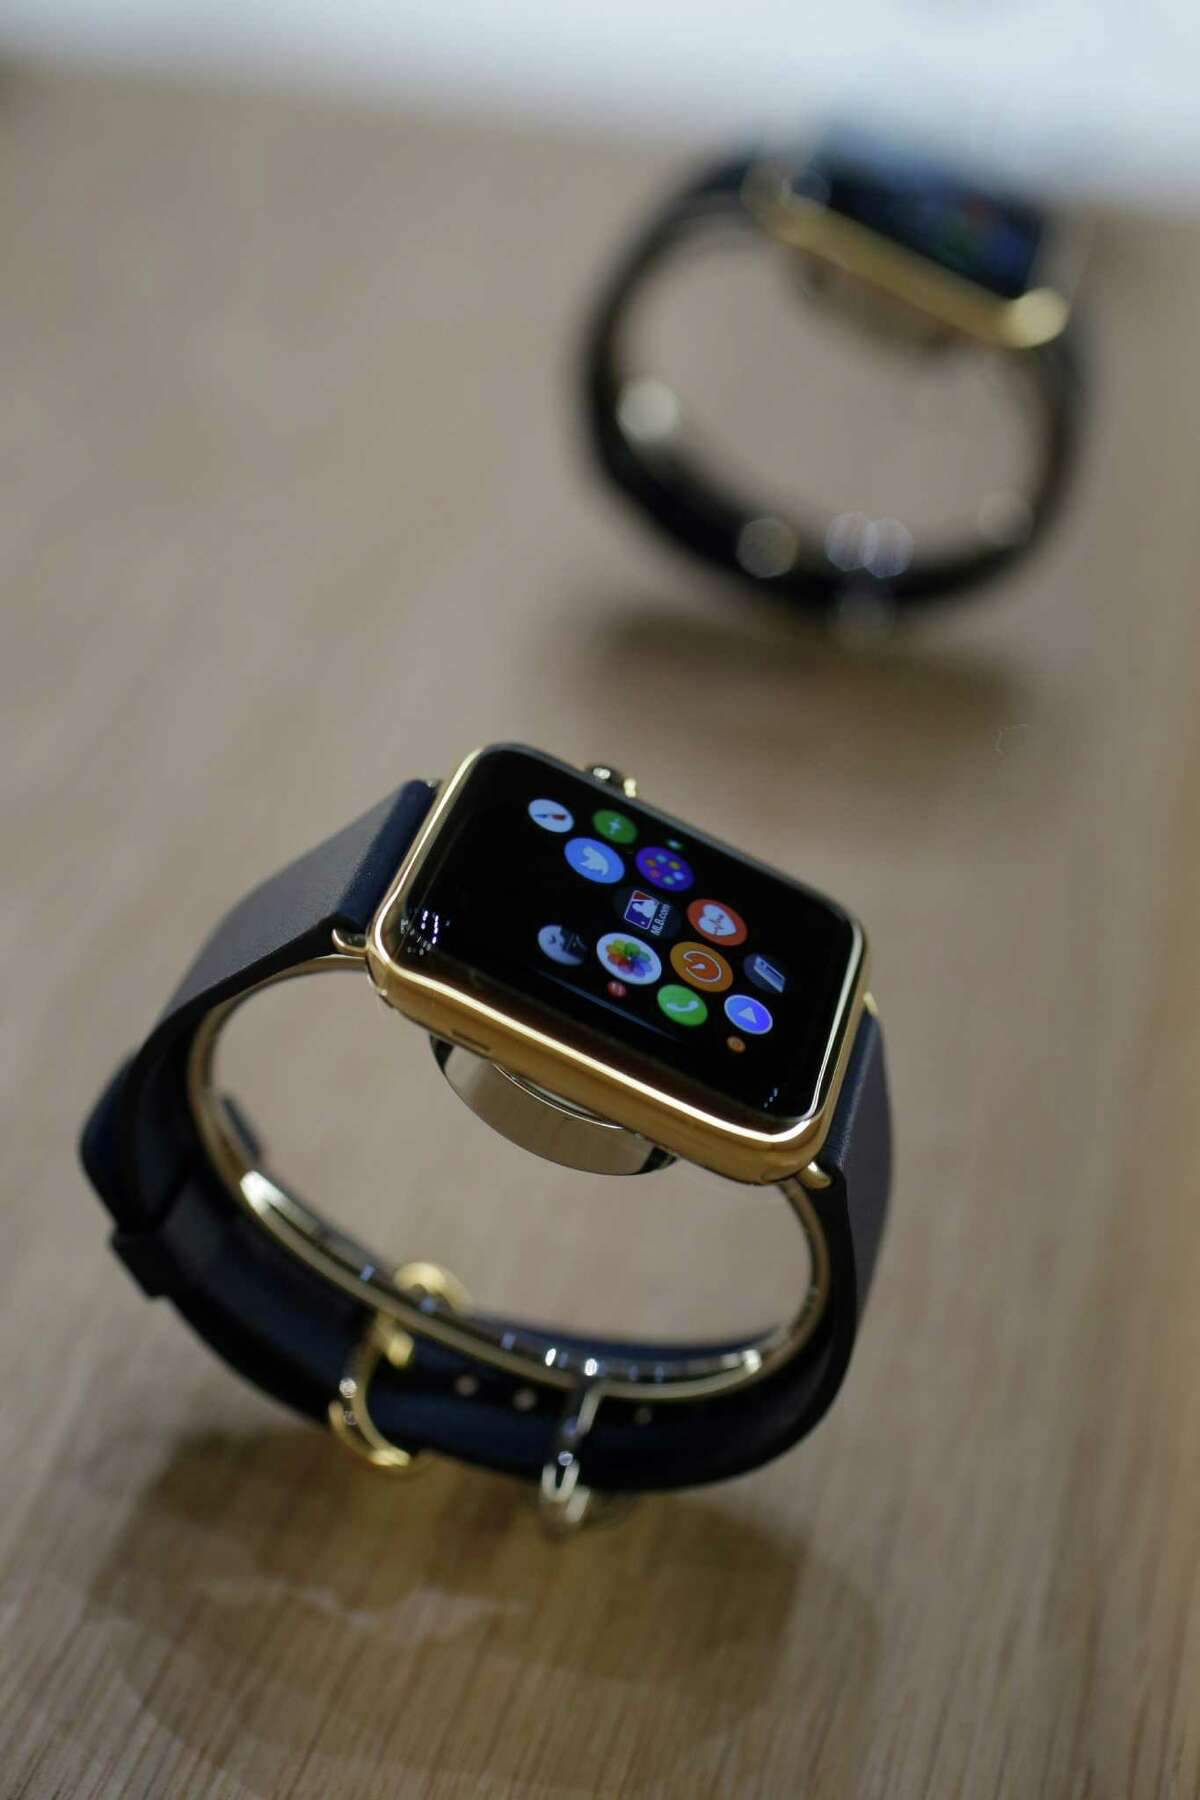 FILE - In this Sept. 9 2014 file photo, varieties of the new Apple Watch are displayed during an event in Cupertino, Calif. Apple Watch, available for pre-order on Friday, April 10, 2015, comes with a choice of watch case, band and size _ there are 54 possible configurations in all. (AP Photo/Marcio Jose Sanchez, File)